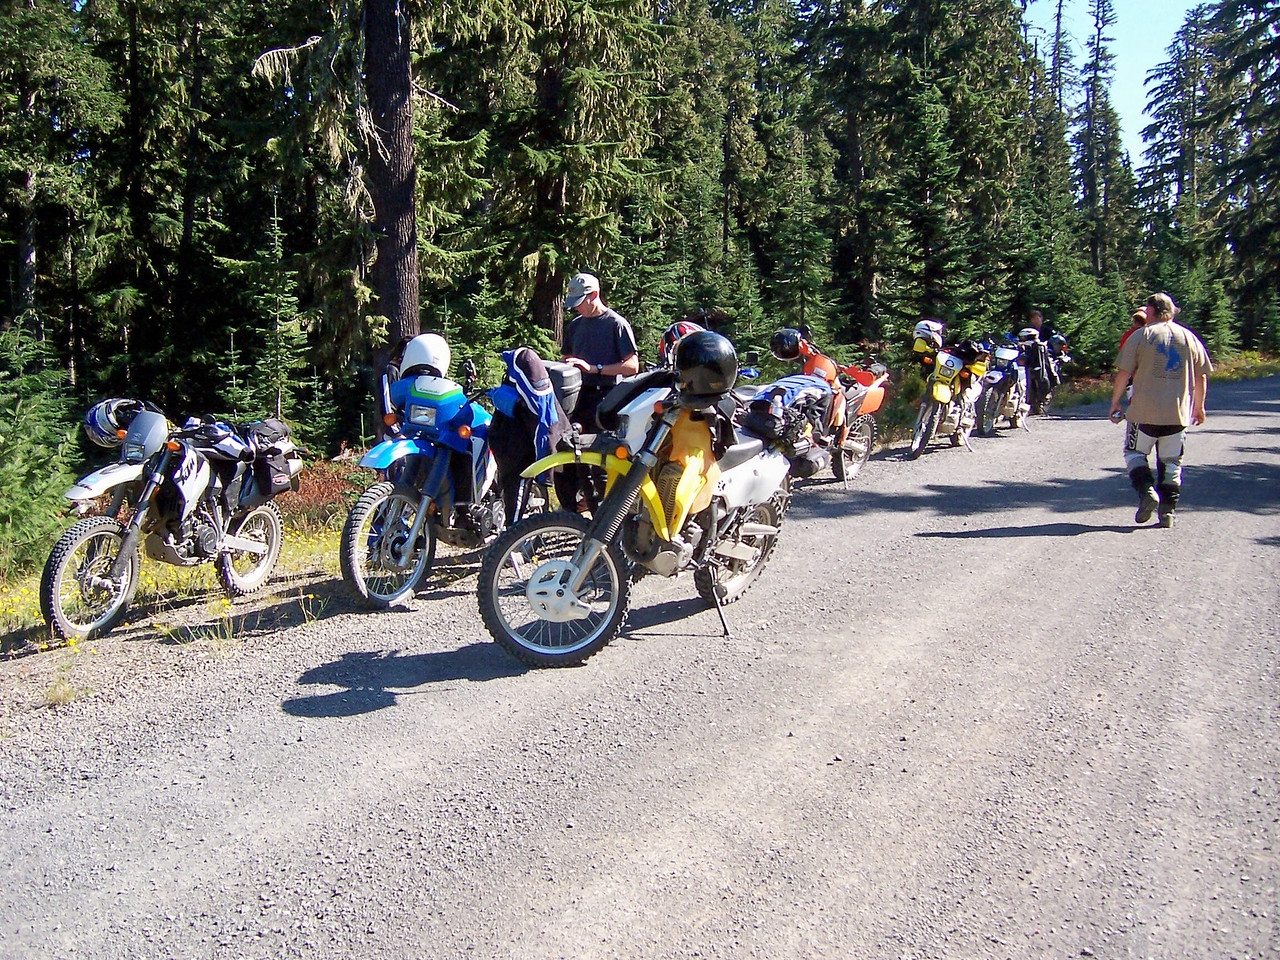 Sylvia & I had 8 other riders with us.